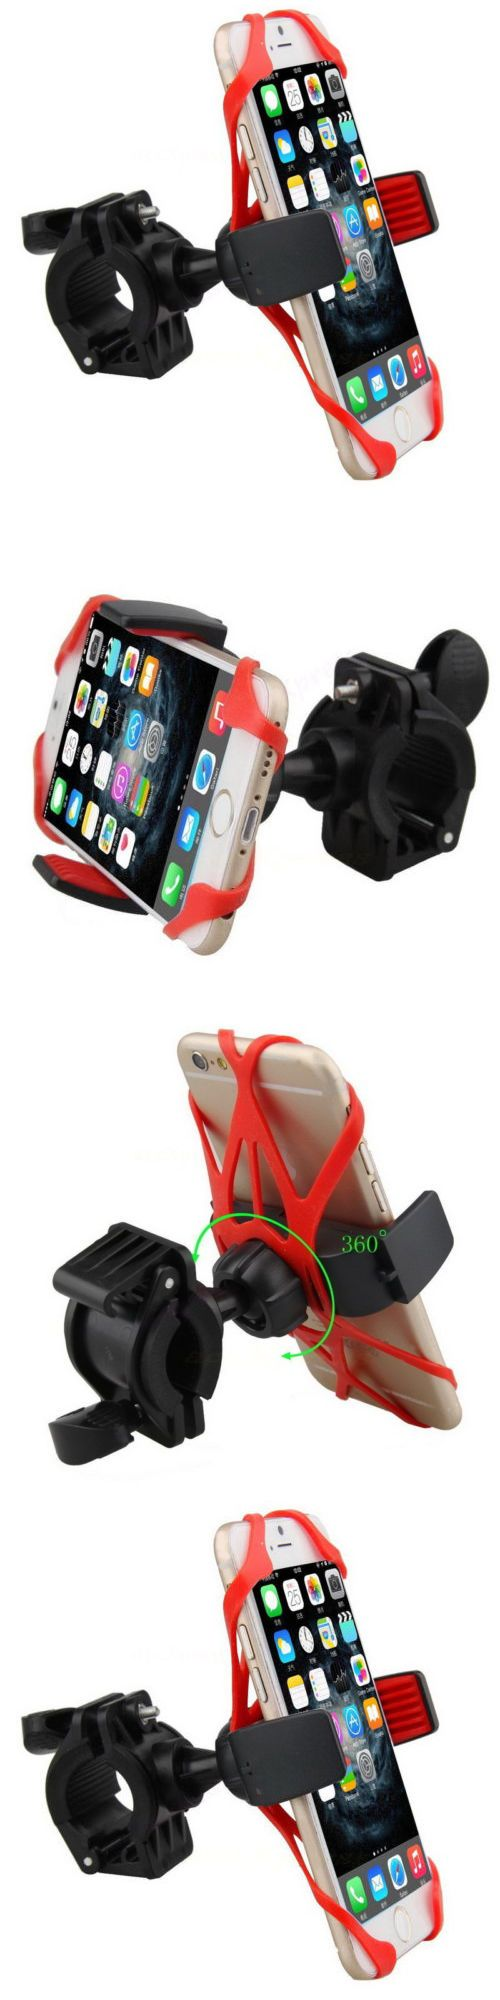 Kickstands 177837: Motorcycle Bicycle Mtb Bike Handlebar Mount Holder Universal For Cell Phone Gps -> BUY IT NOW ONLY: $32.45 on eBay!